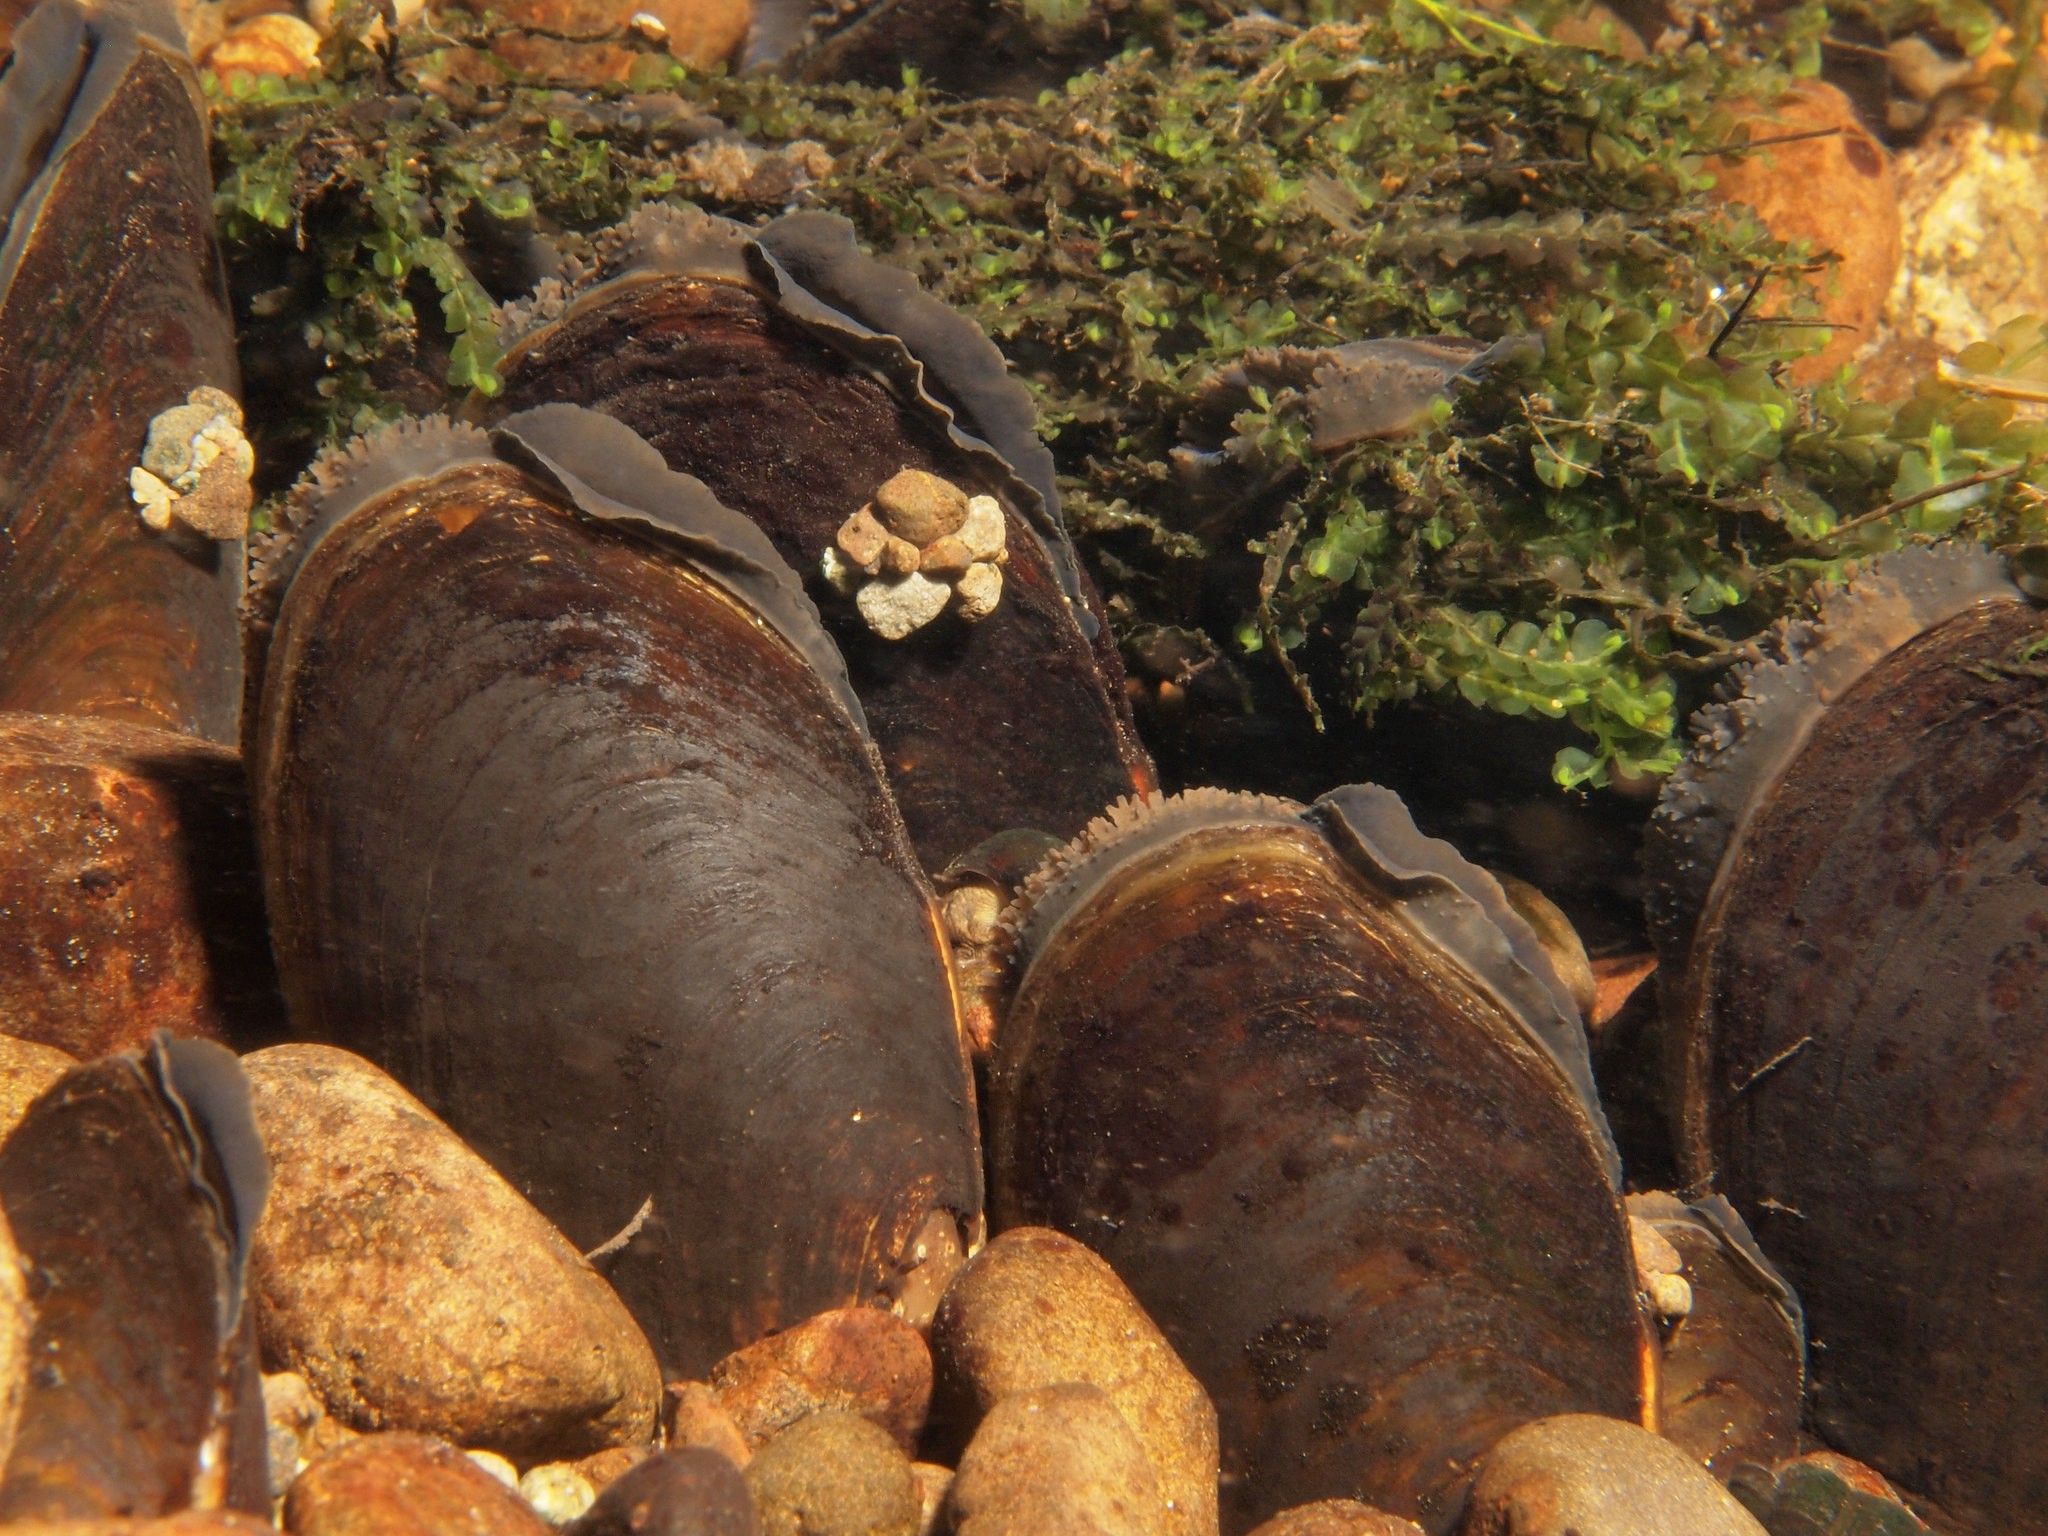 Western pearlshell mussels underwater and surrounded by moss and rocks